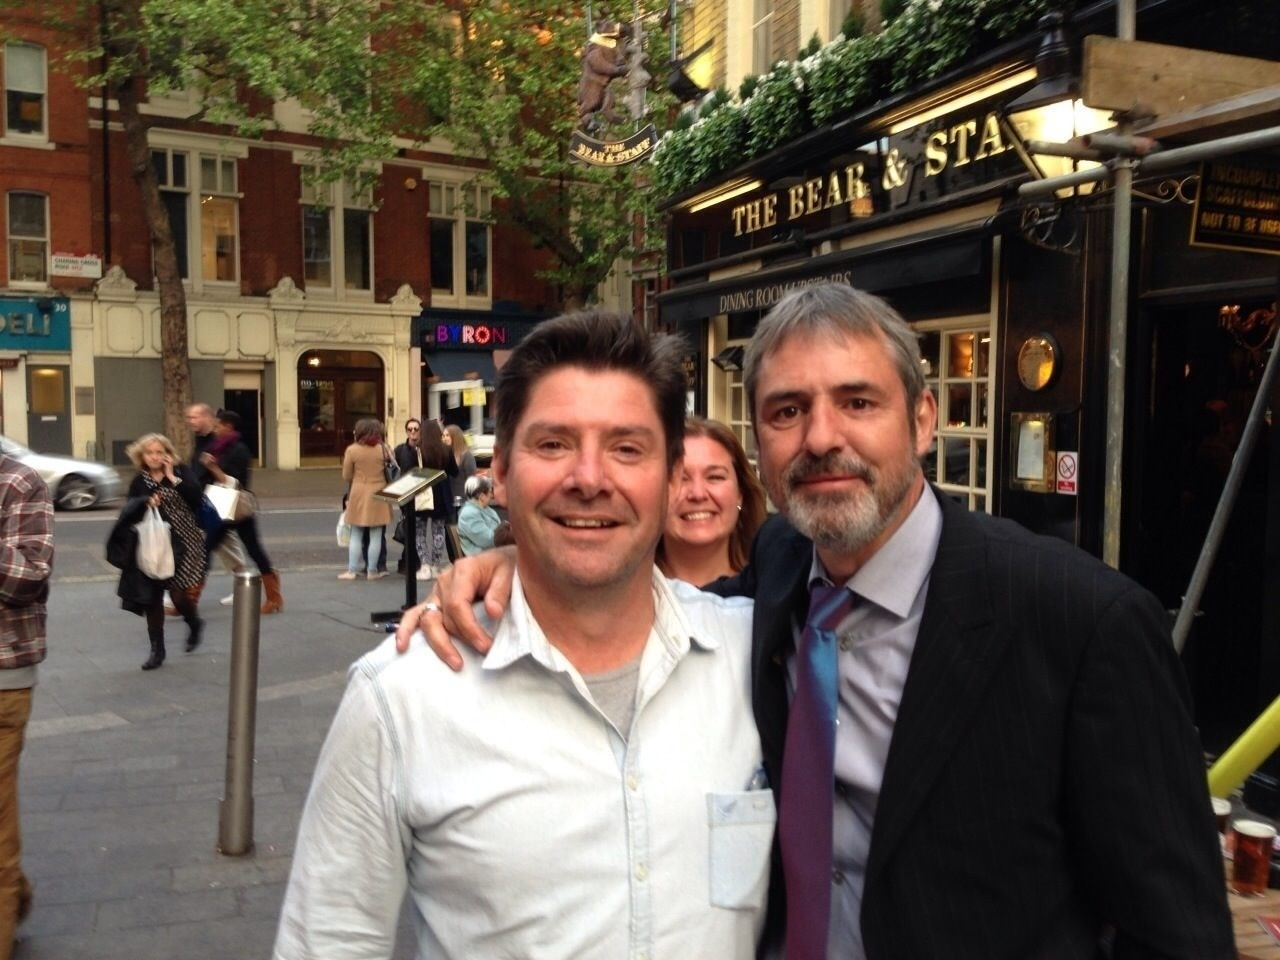 I was lucky to meet up with Neil Morrissey, the voice of Bob the Builder, one of the characters my three year old son adores.